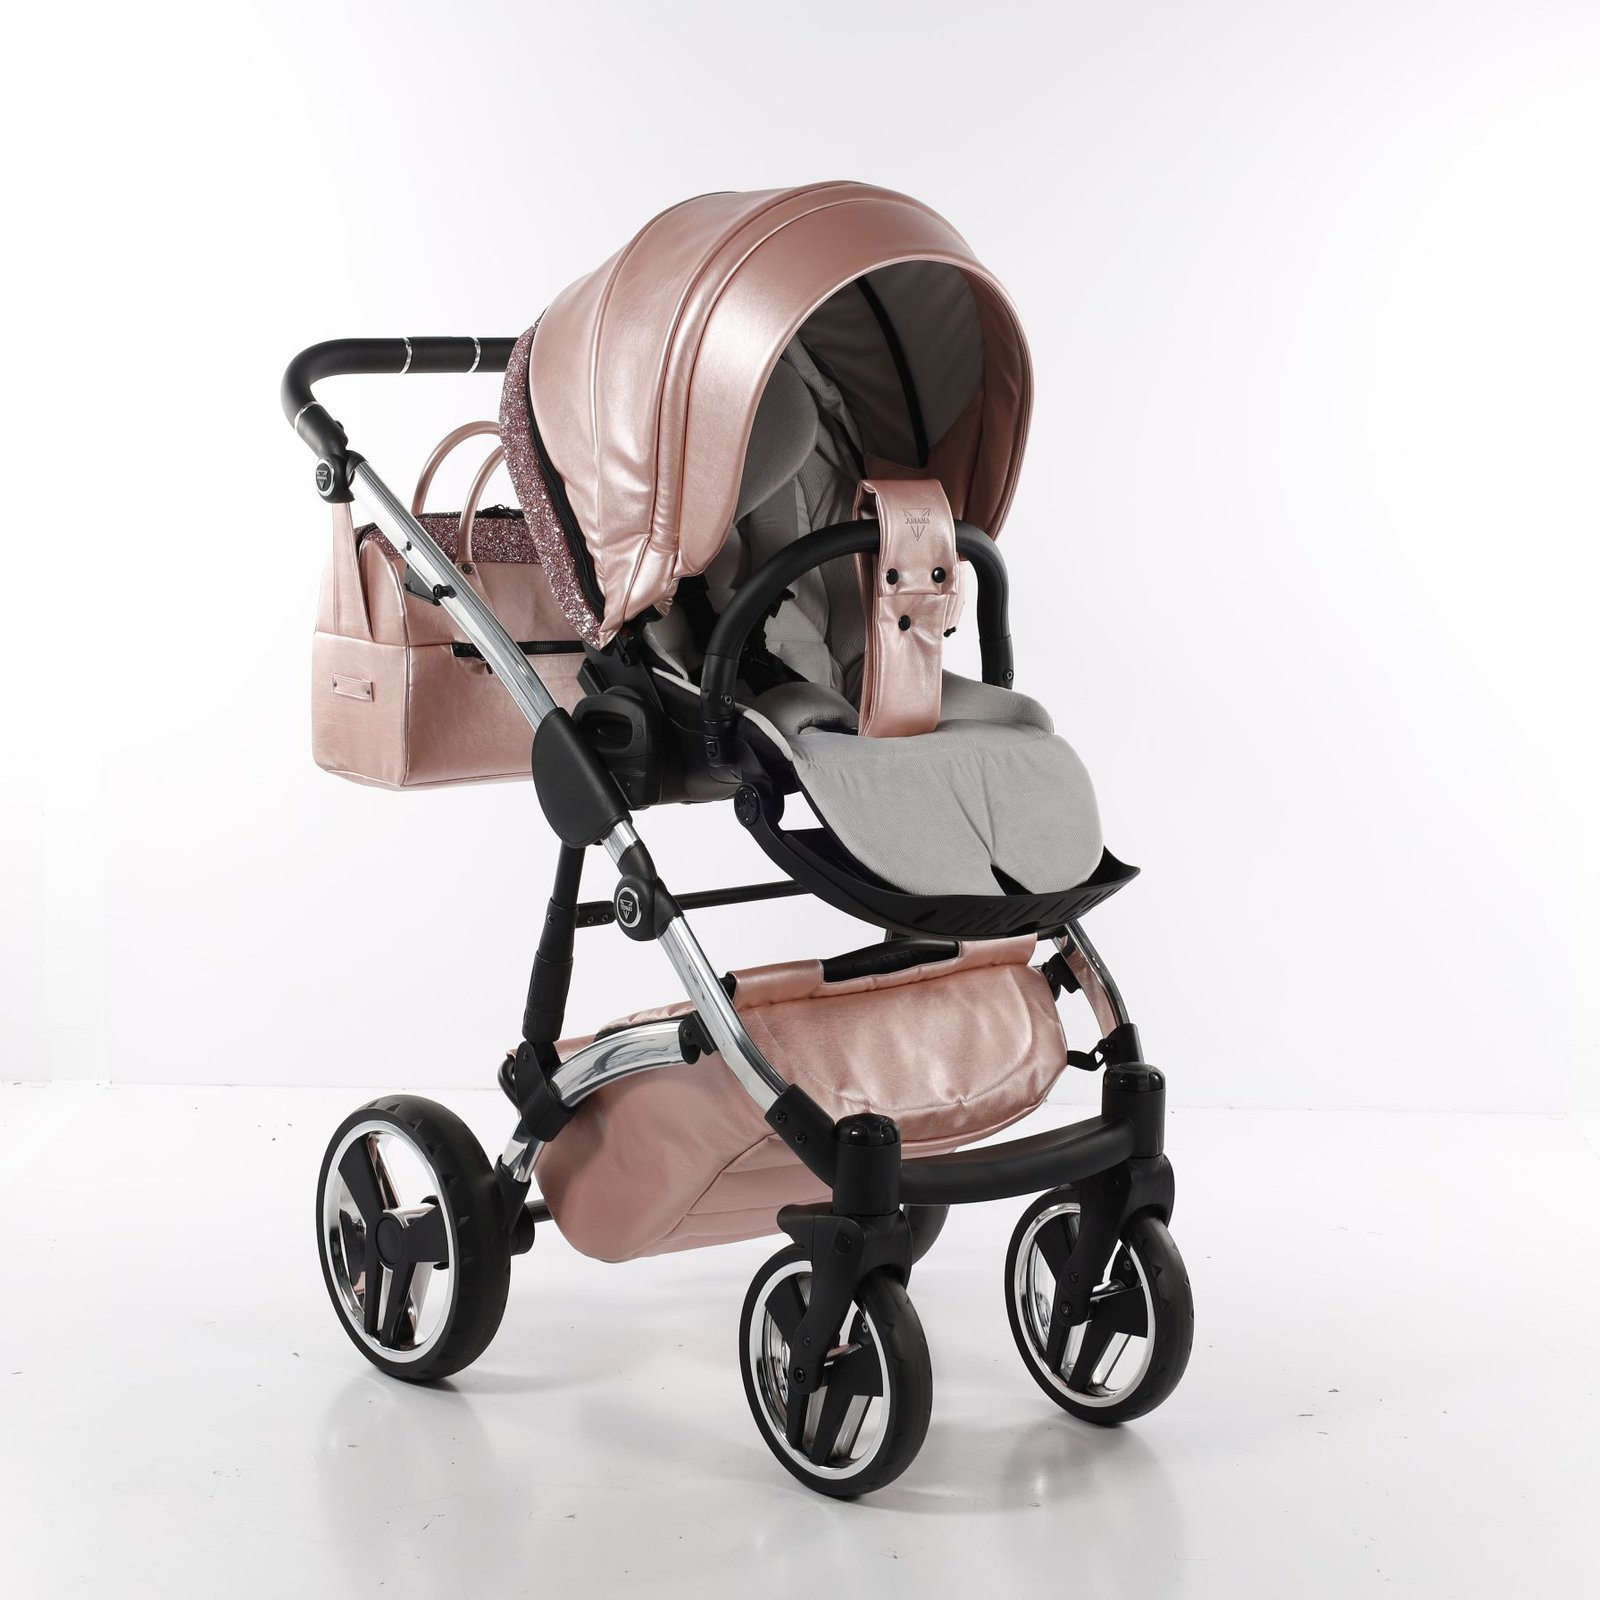 Junama GLITTER - 2in1 pushchair with carrycot   colour 06 06   Prams    KinderPrams